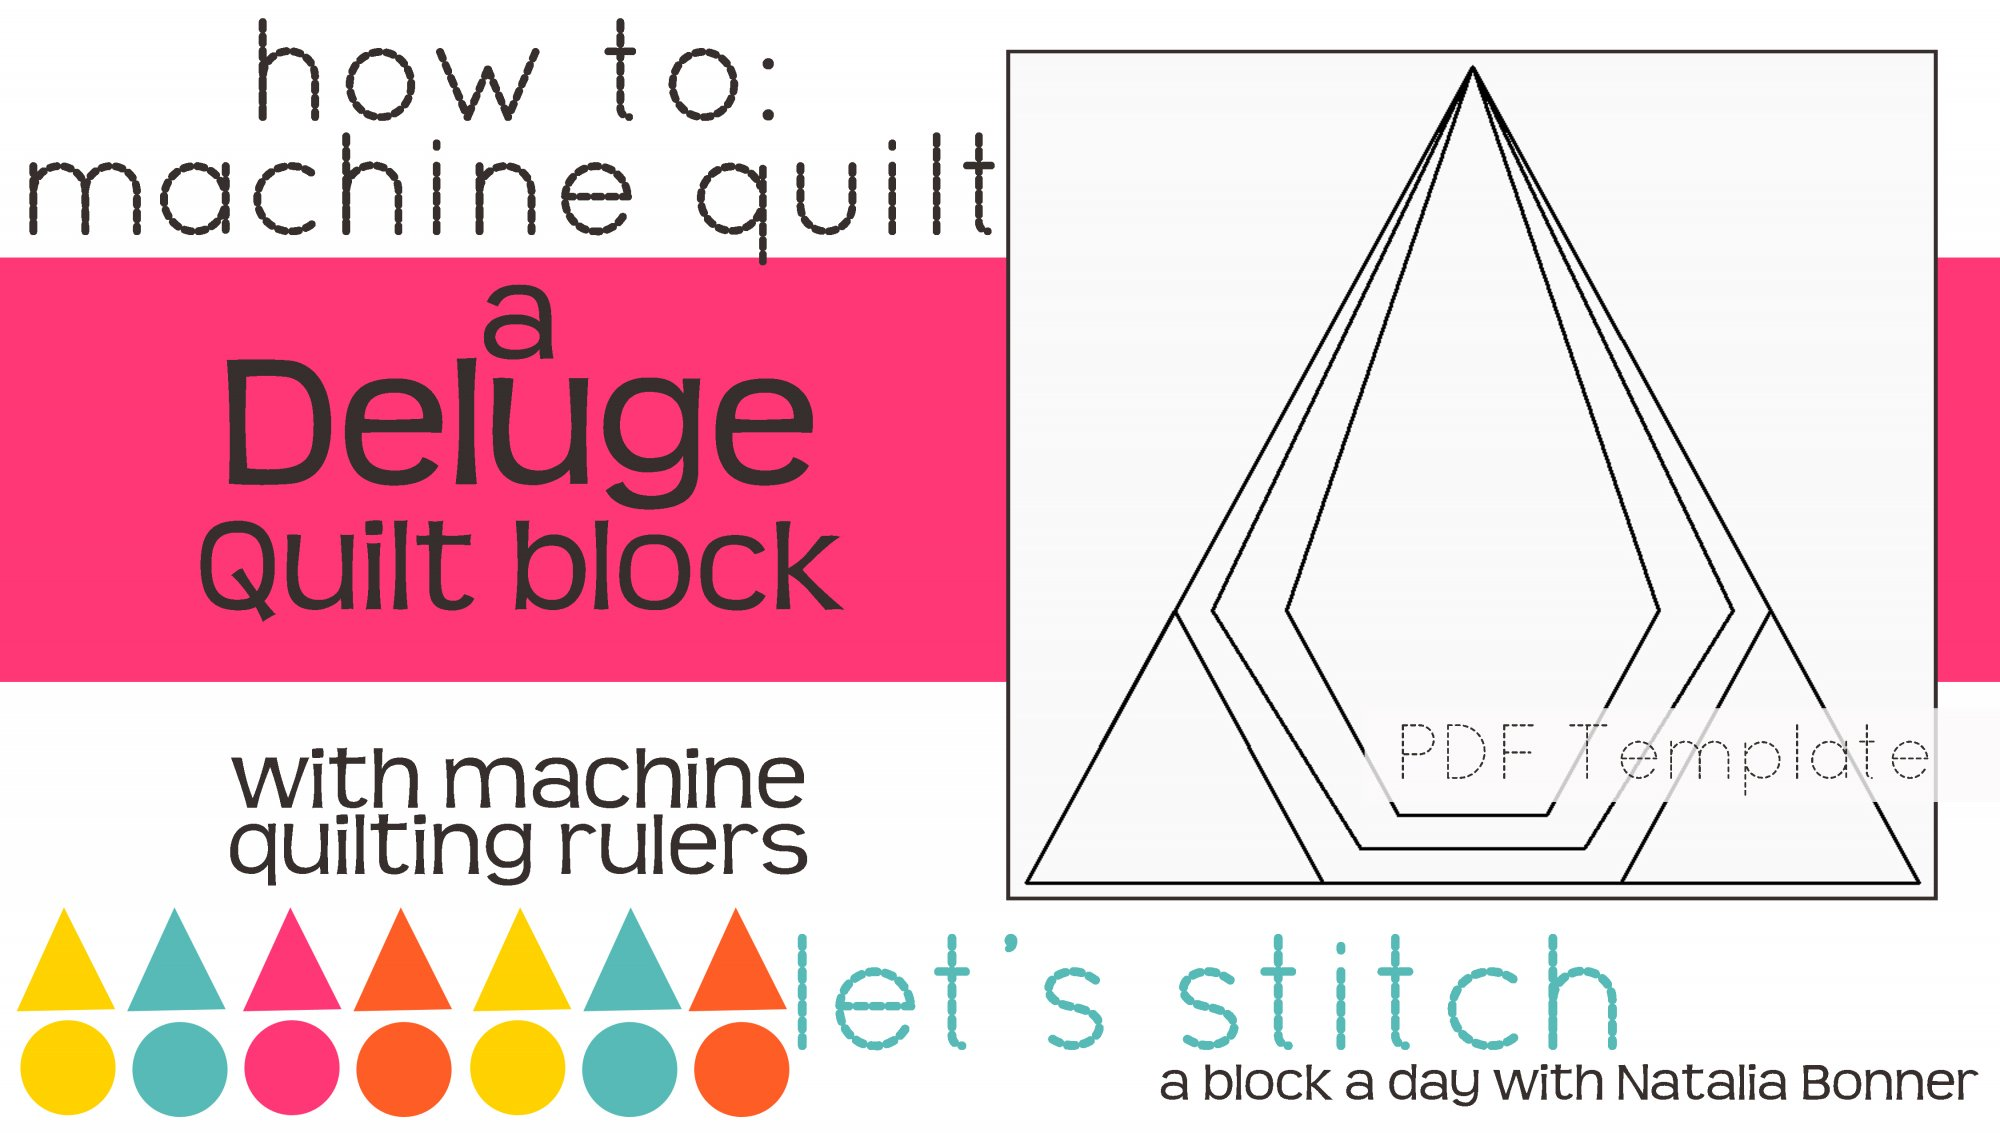 Let's Stitch - A Block a Day With Natalia Bonner - PDF - Deluge